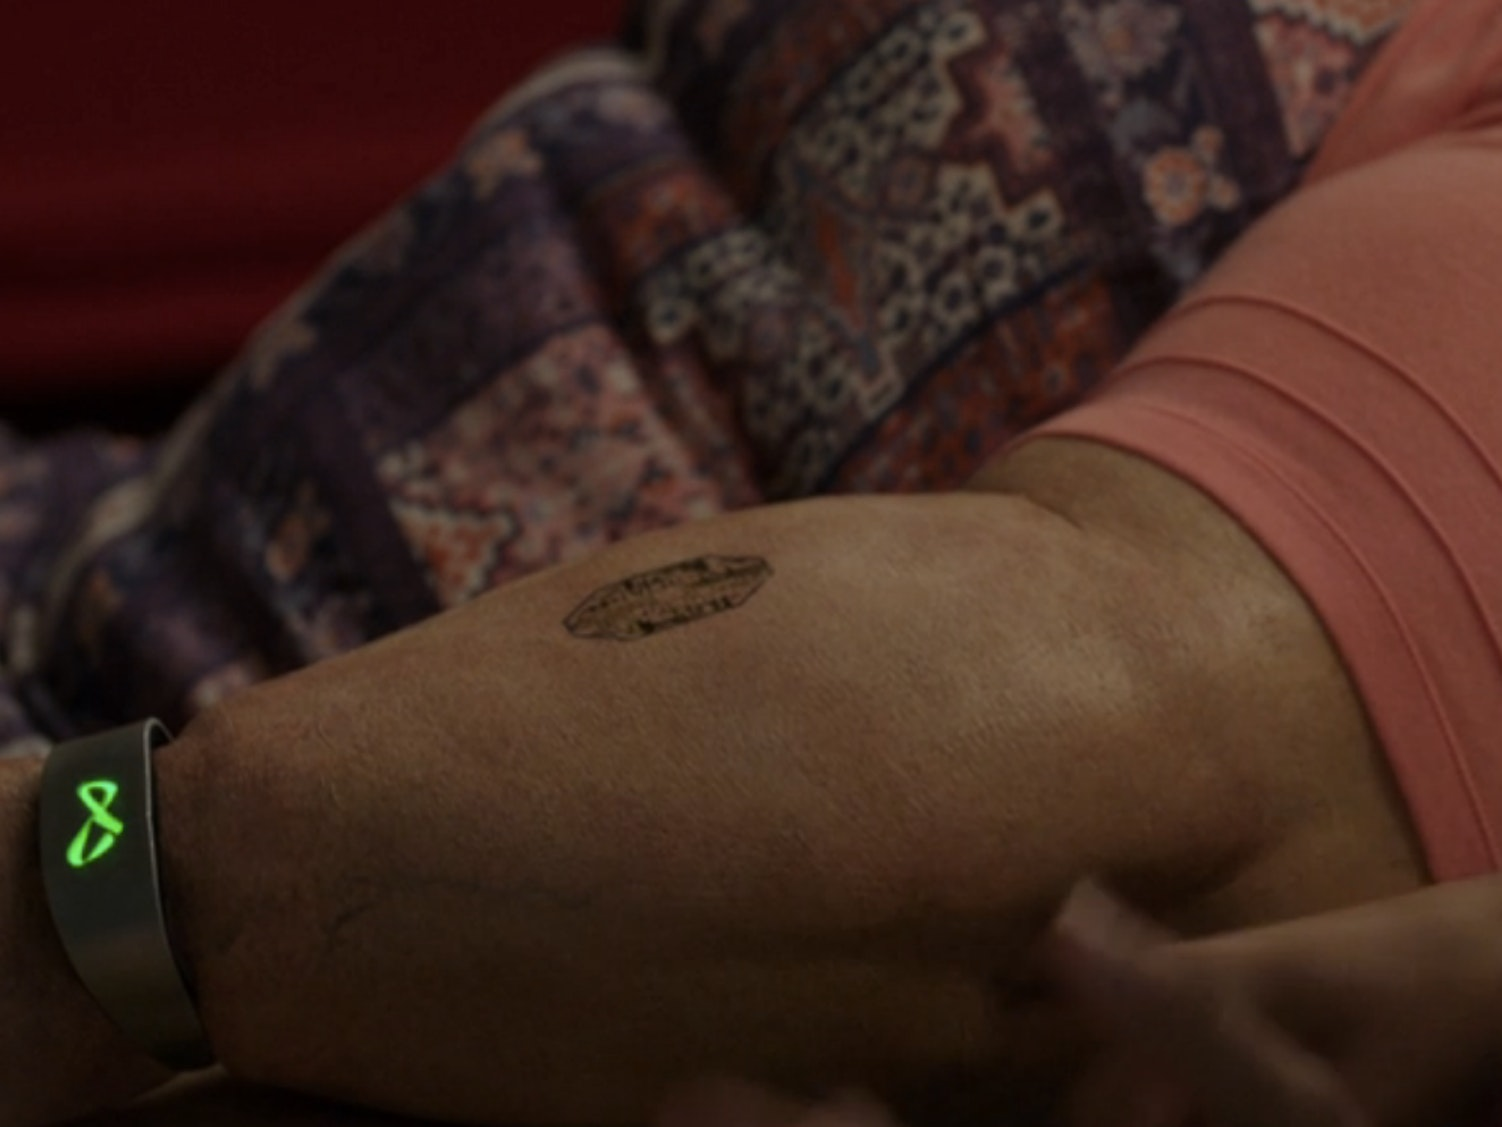 Data collected by the discreet black sensor on Melissa's arm is only useful if she knows what to do with it.